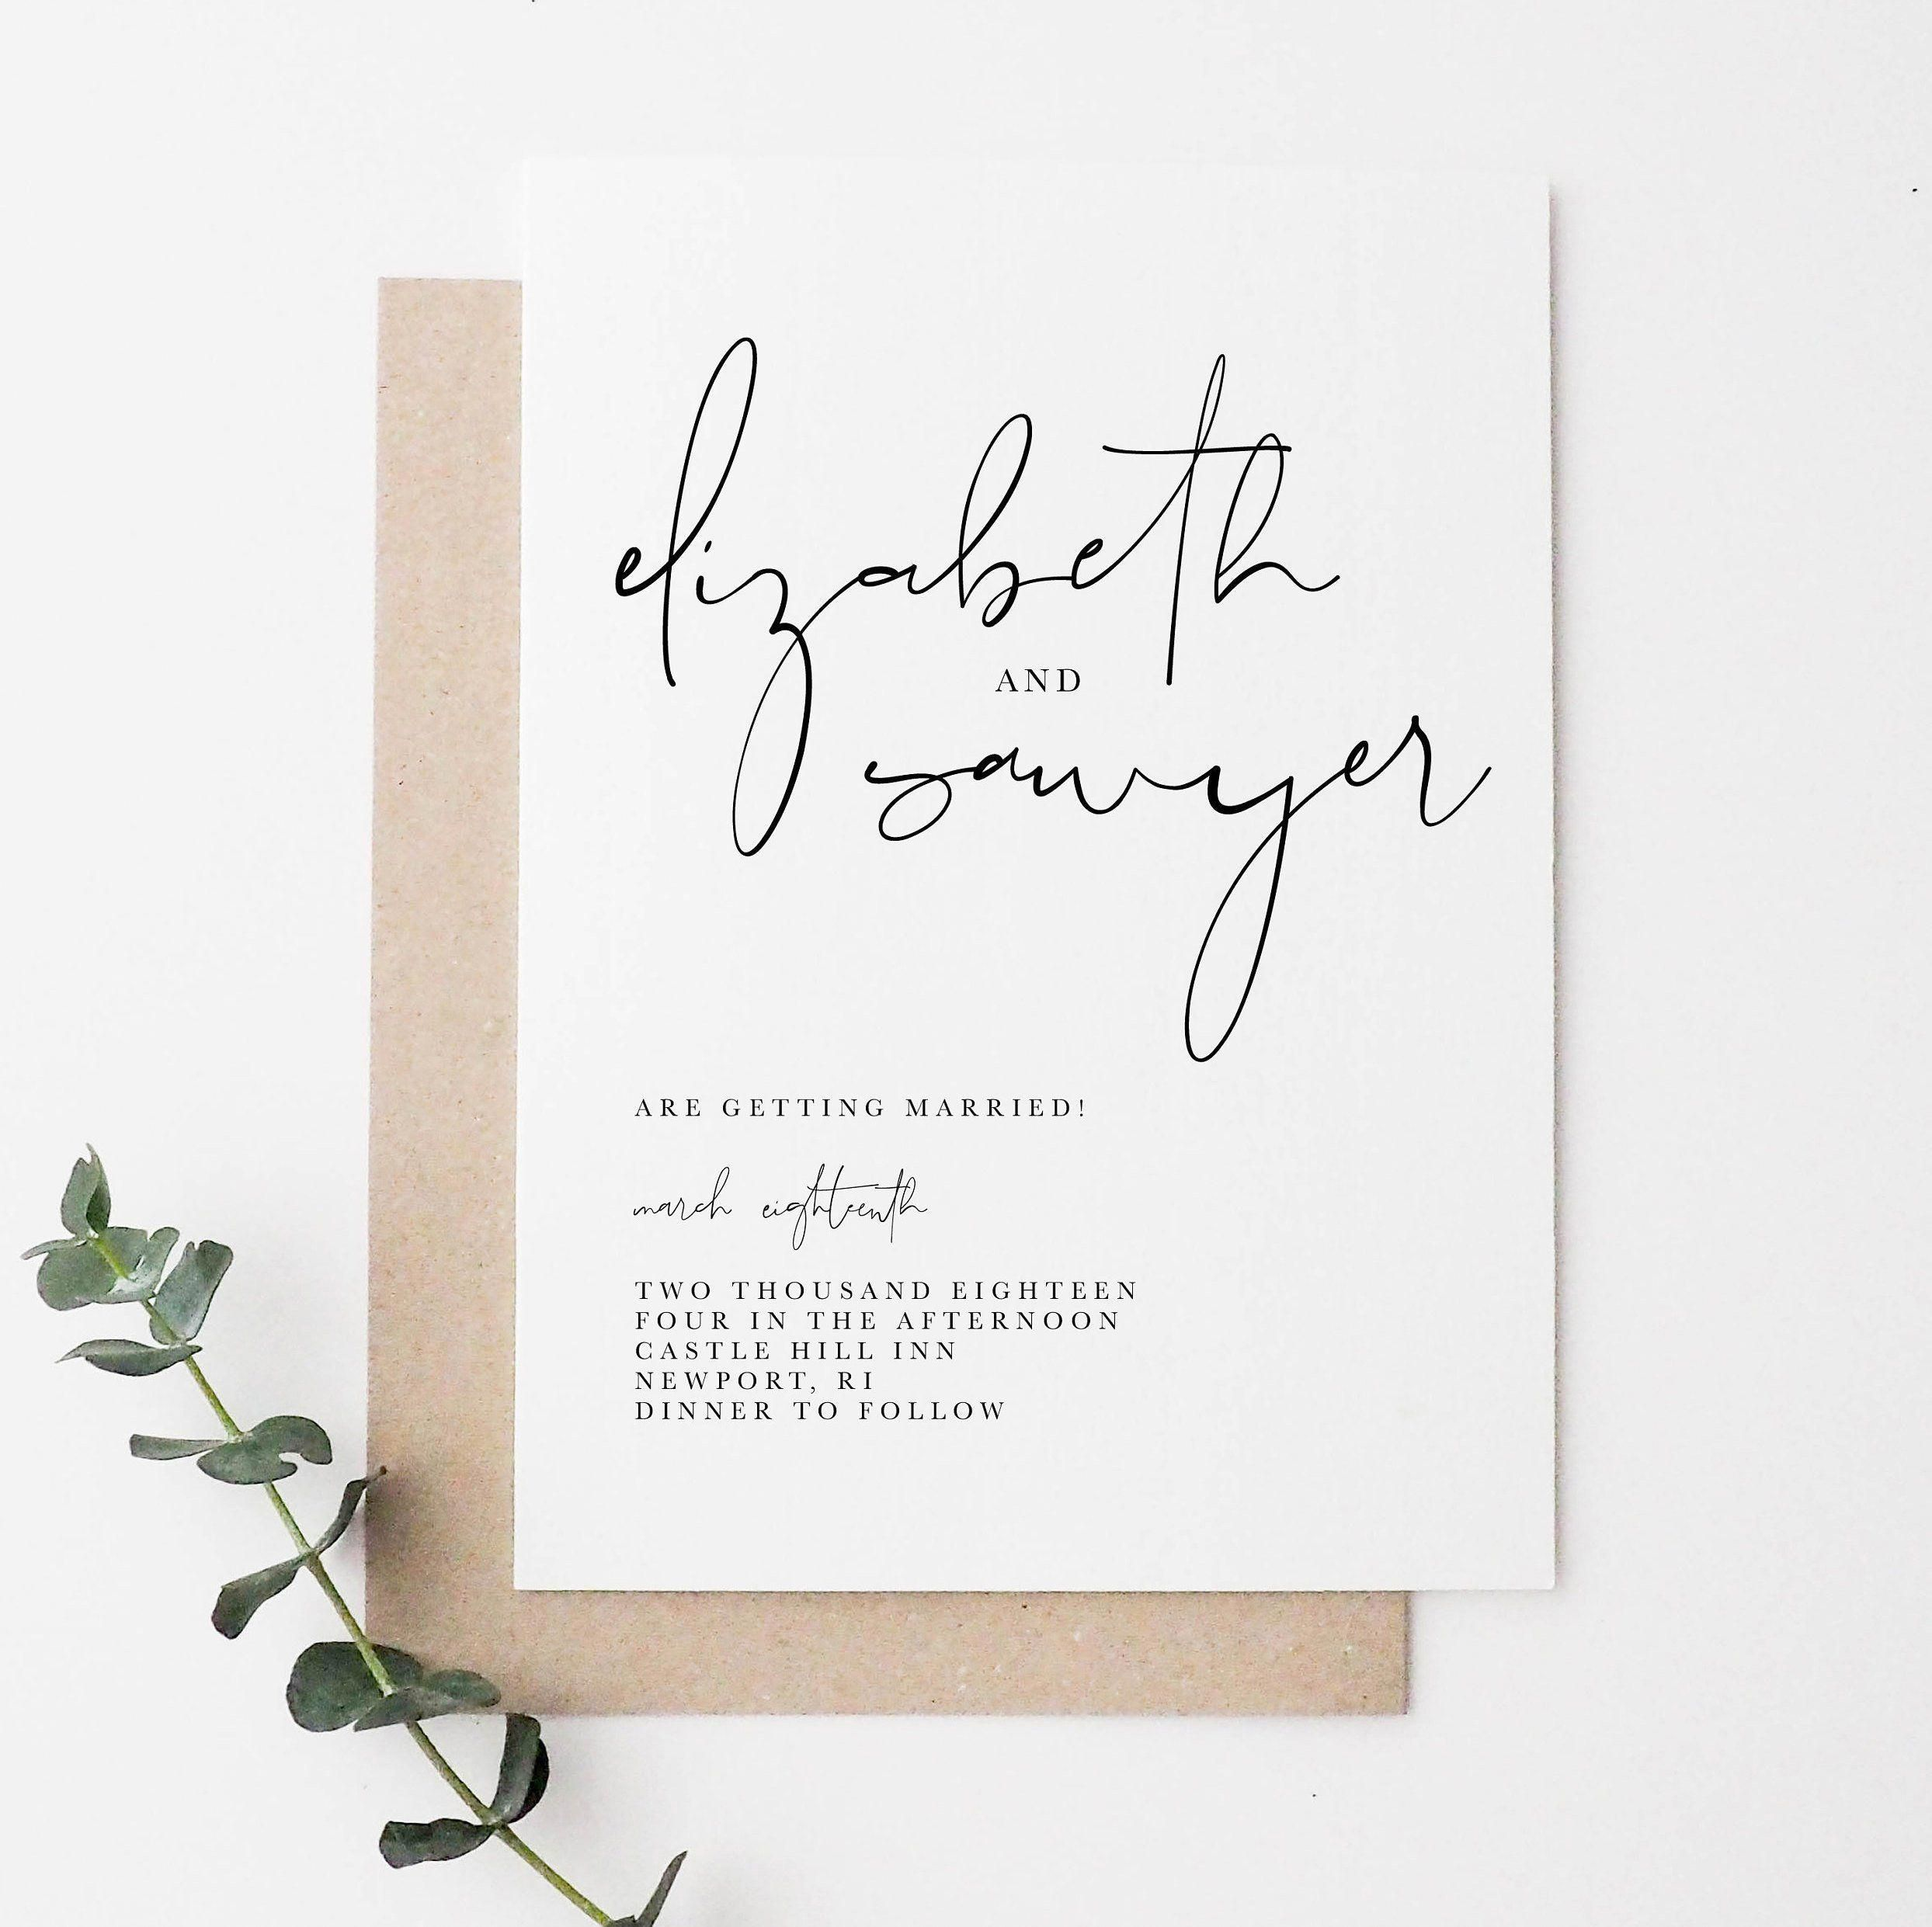 Free Electronic Wedding Invitations Templates: Minimal Wedding Invitation In